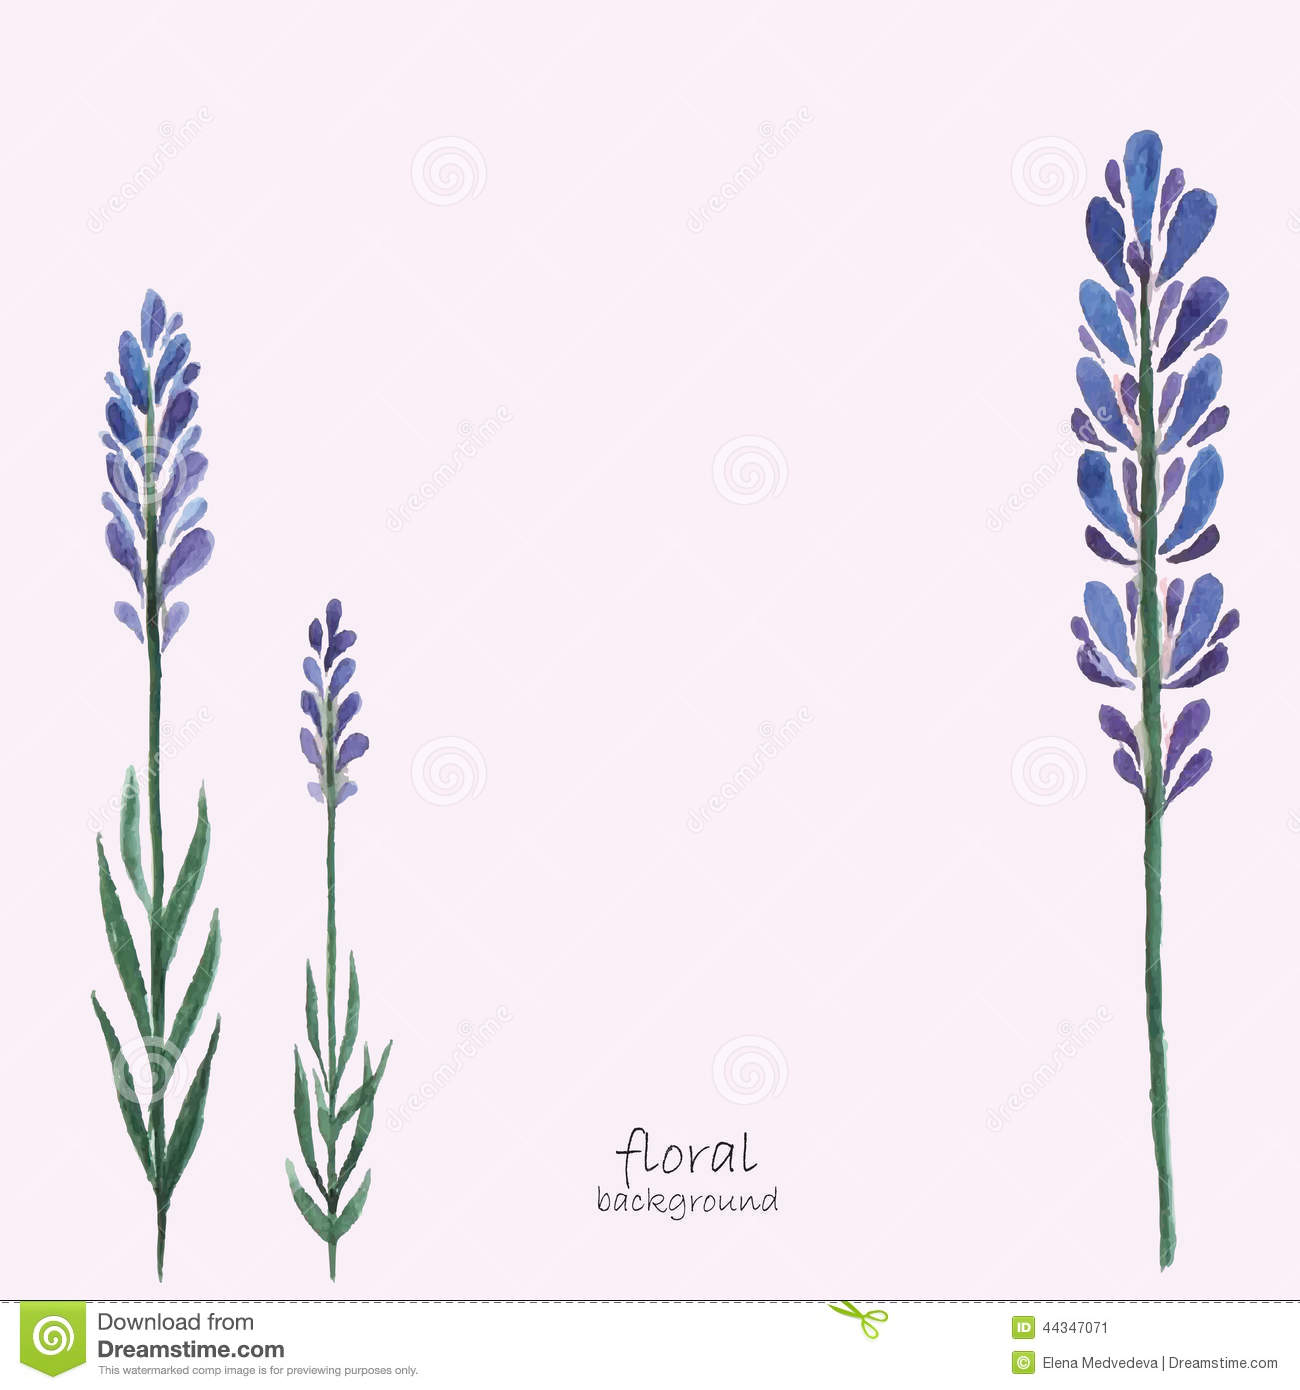 Lavender Invitations was awesome invitations template